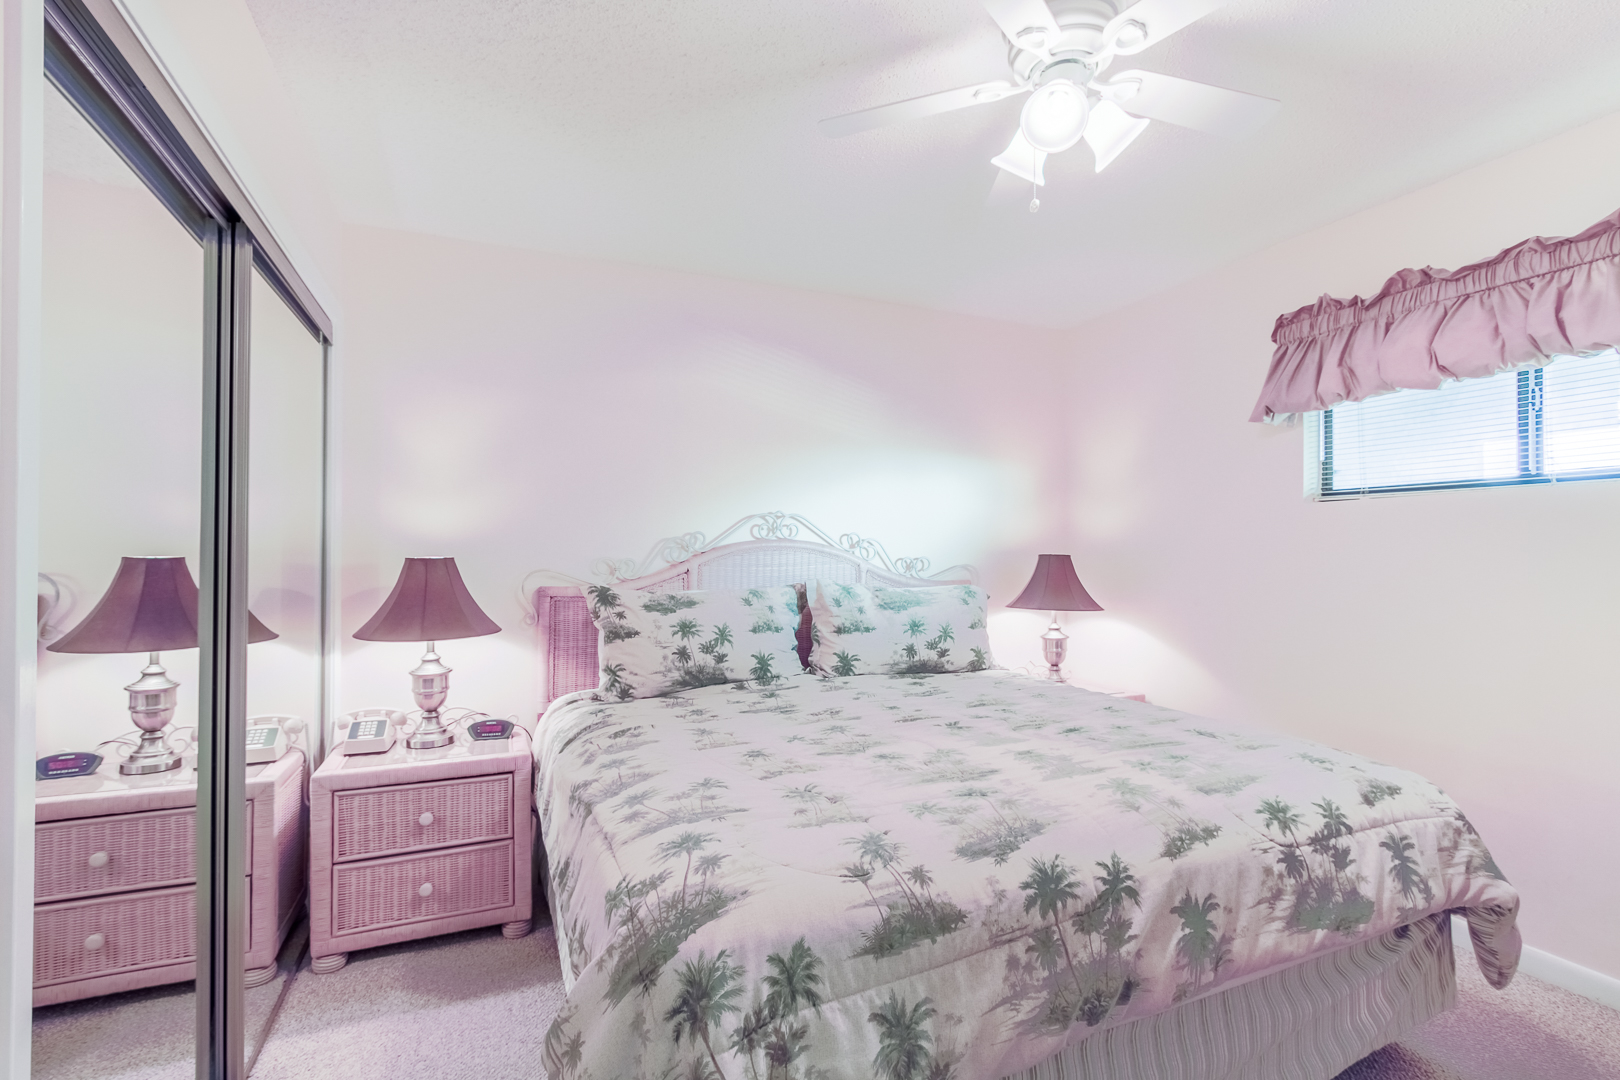 Holiday Surf & Racquet Club 118 Condo rental in Holiday Surf & Racquet Club in Destin Florida - #12